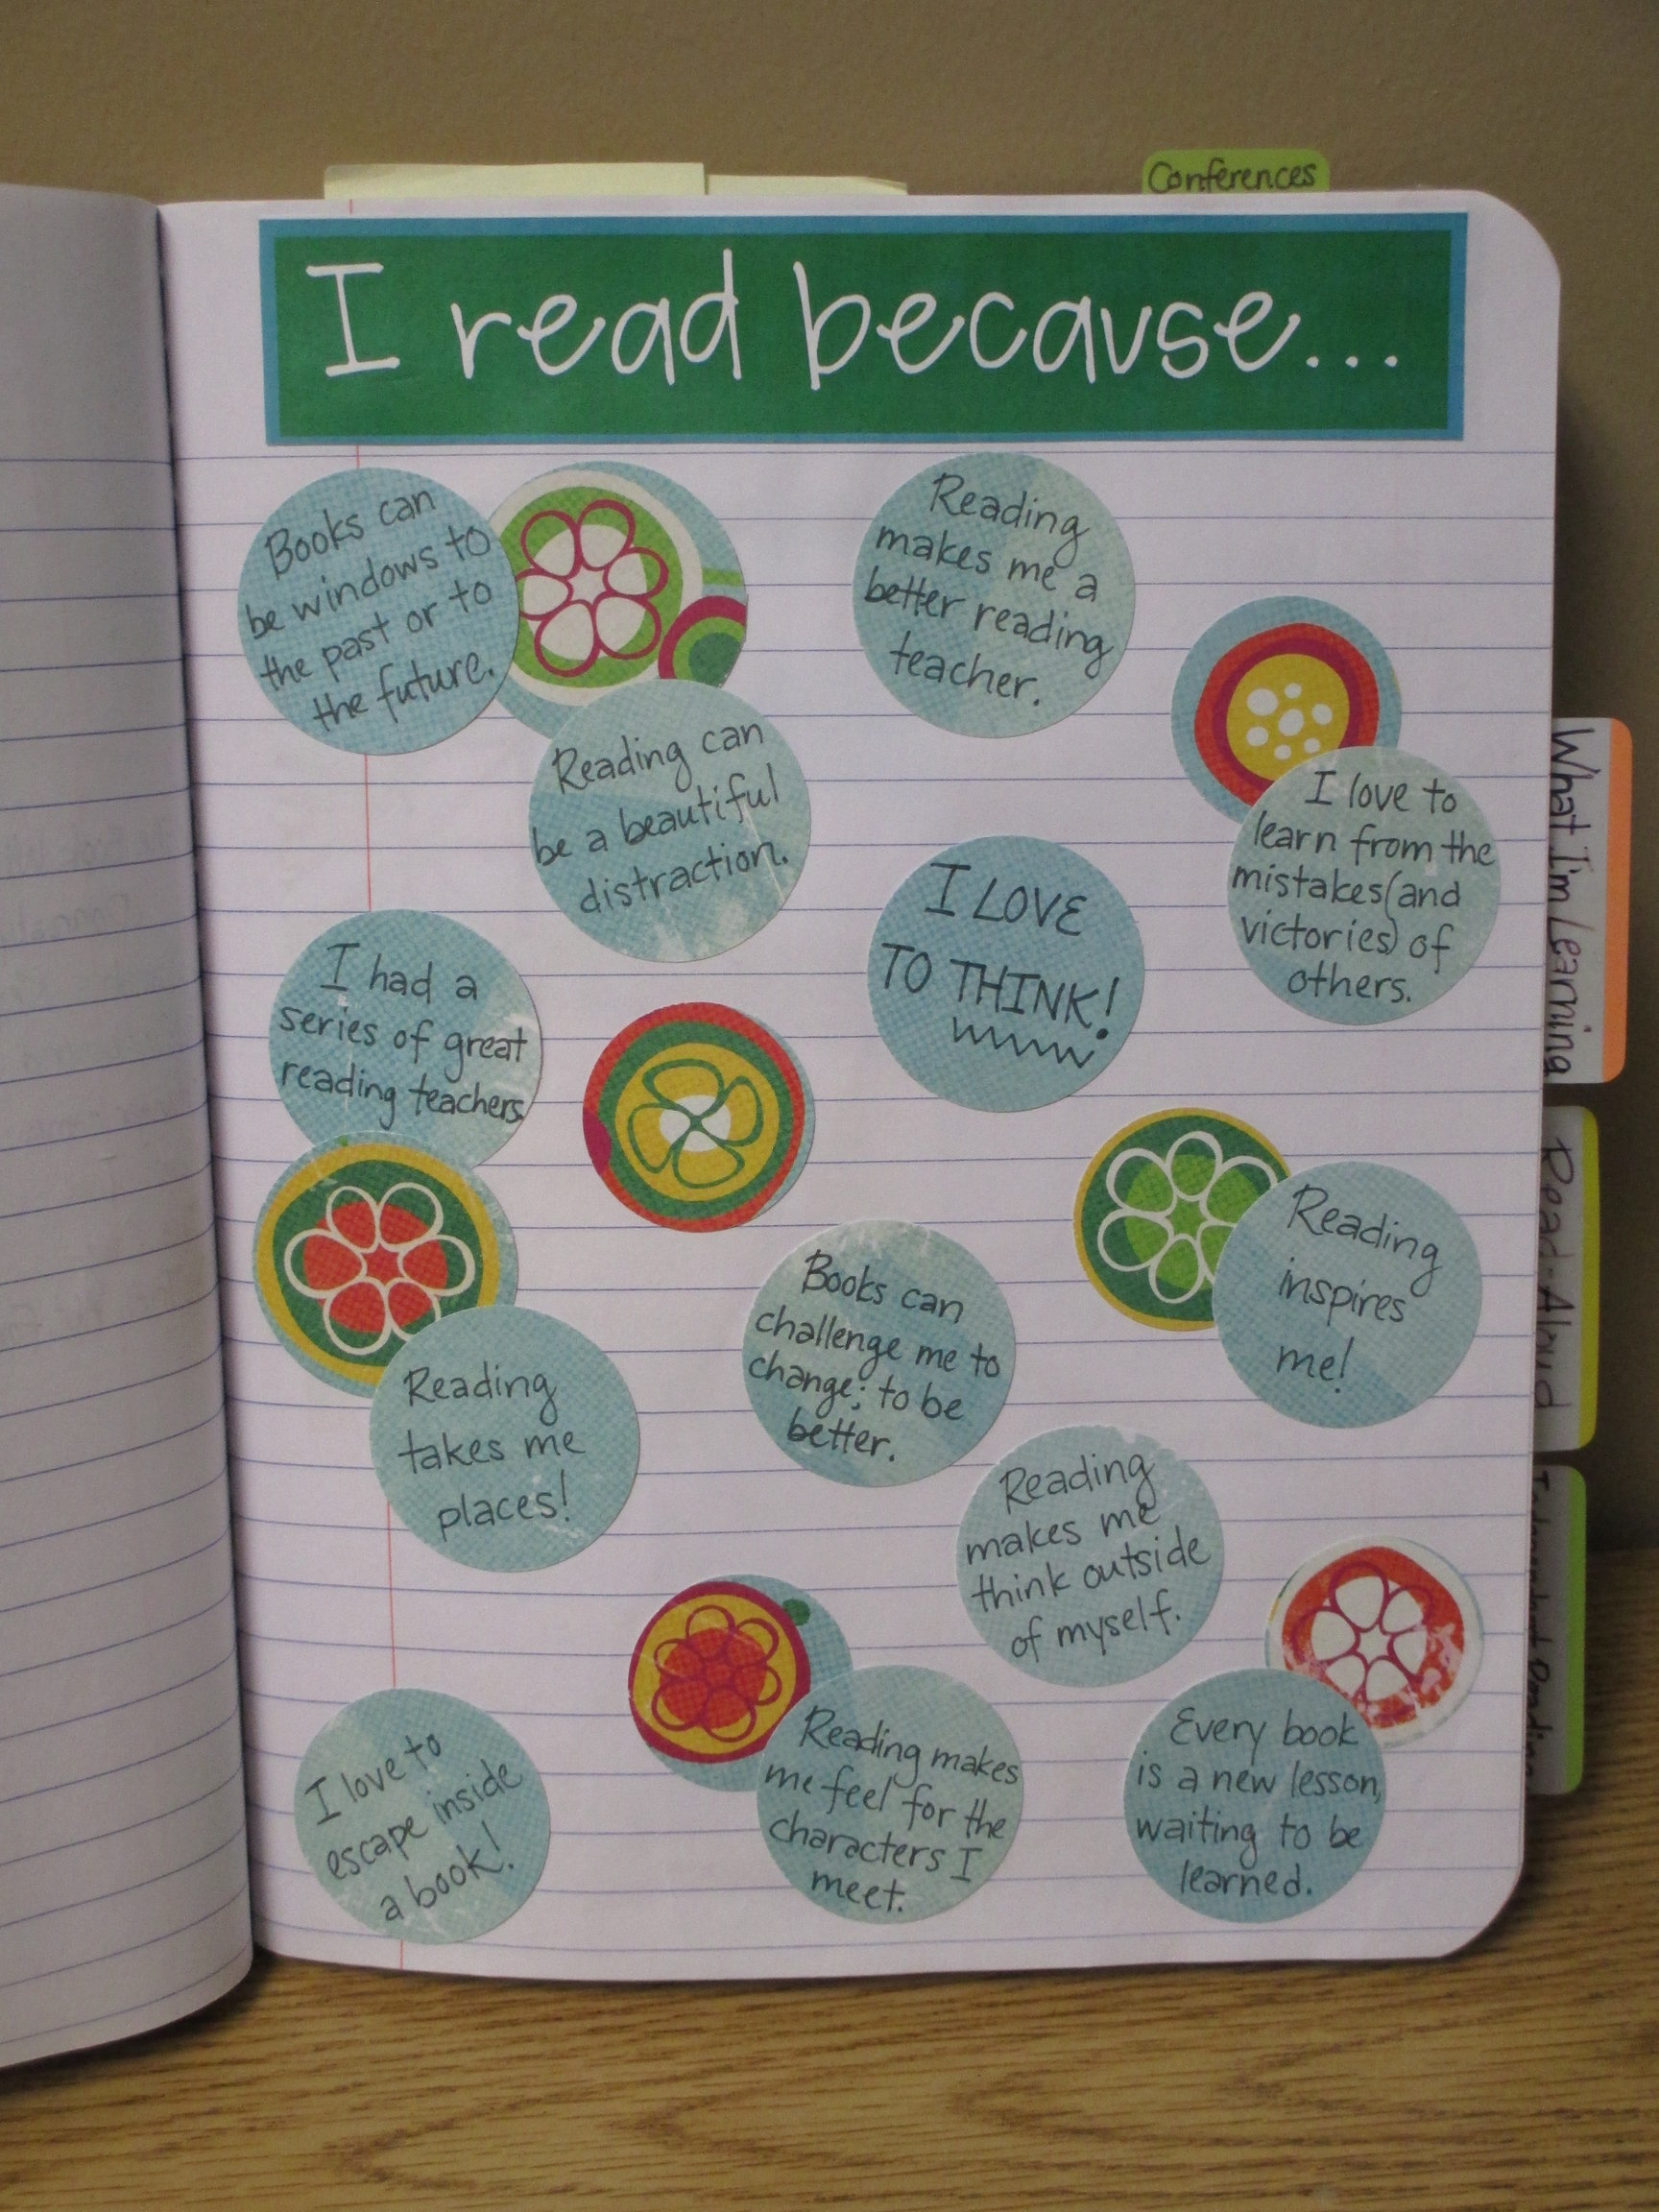 Notebook Entry - Reasons for Reading